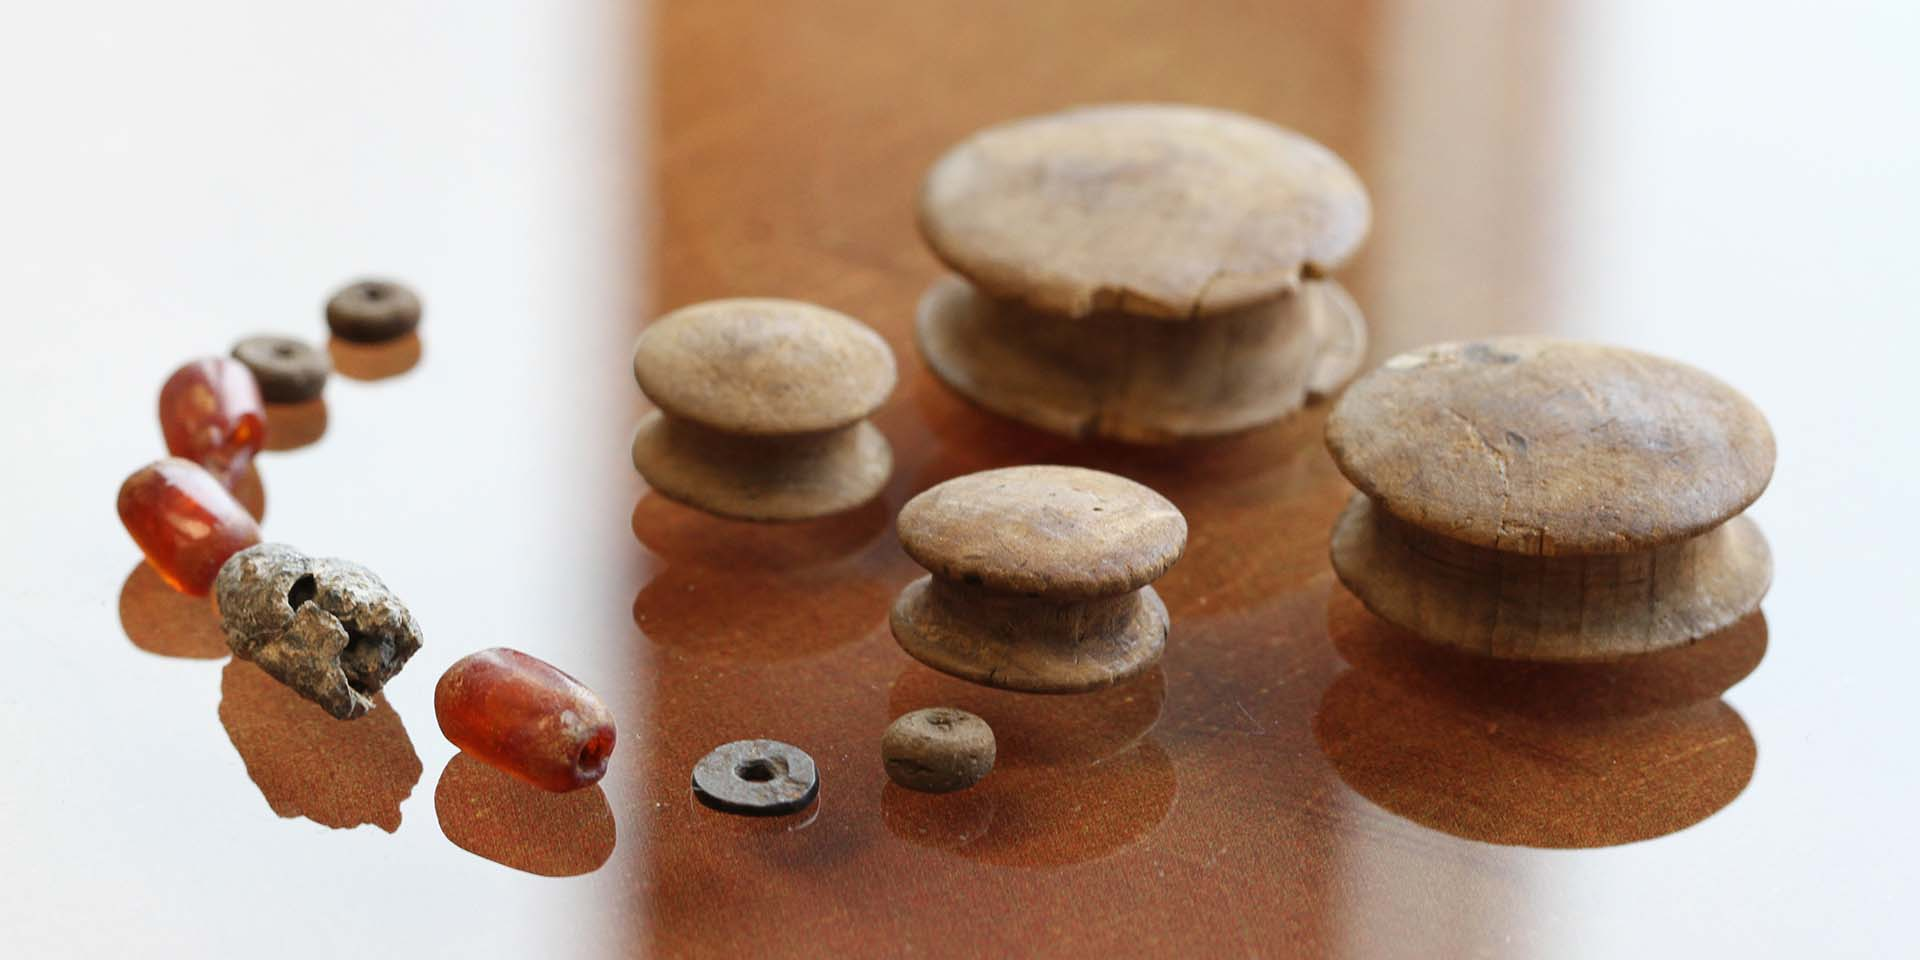 Amber and shale beads and wooden plugs